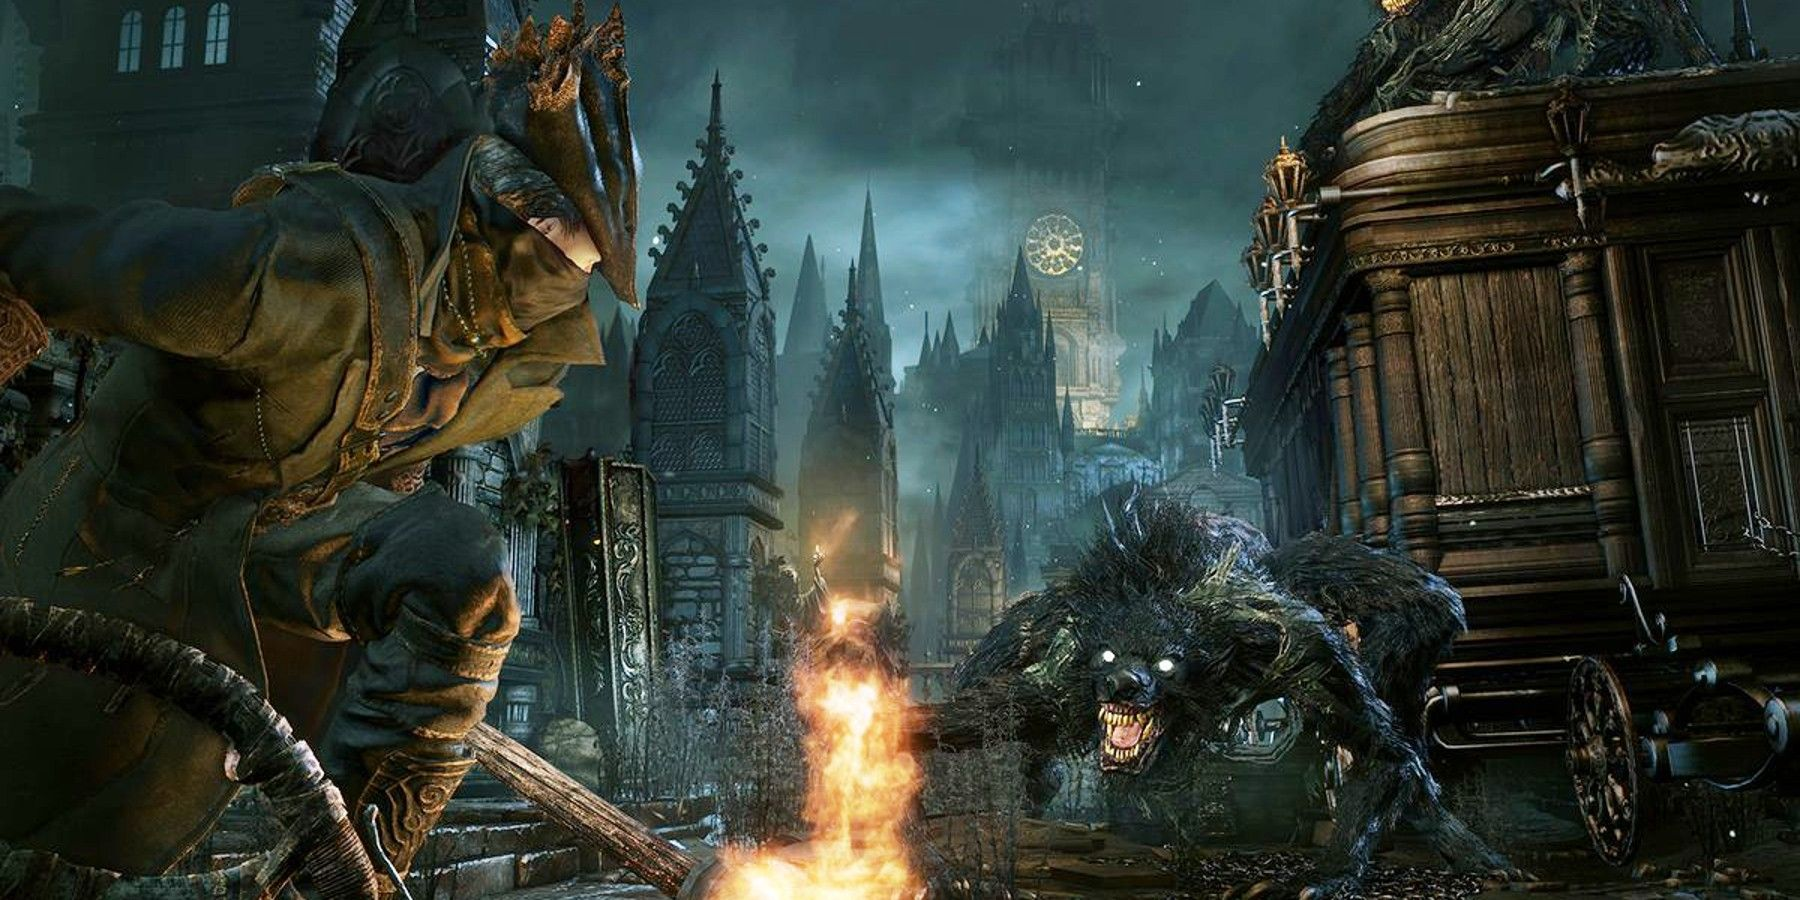 Hilarious Video Shows Bloodborne Fan Explaining Lore at Musical Festival